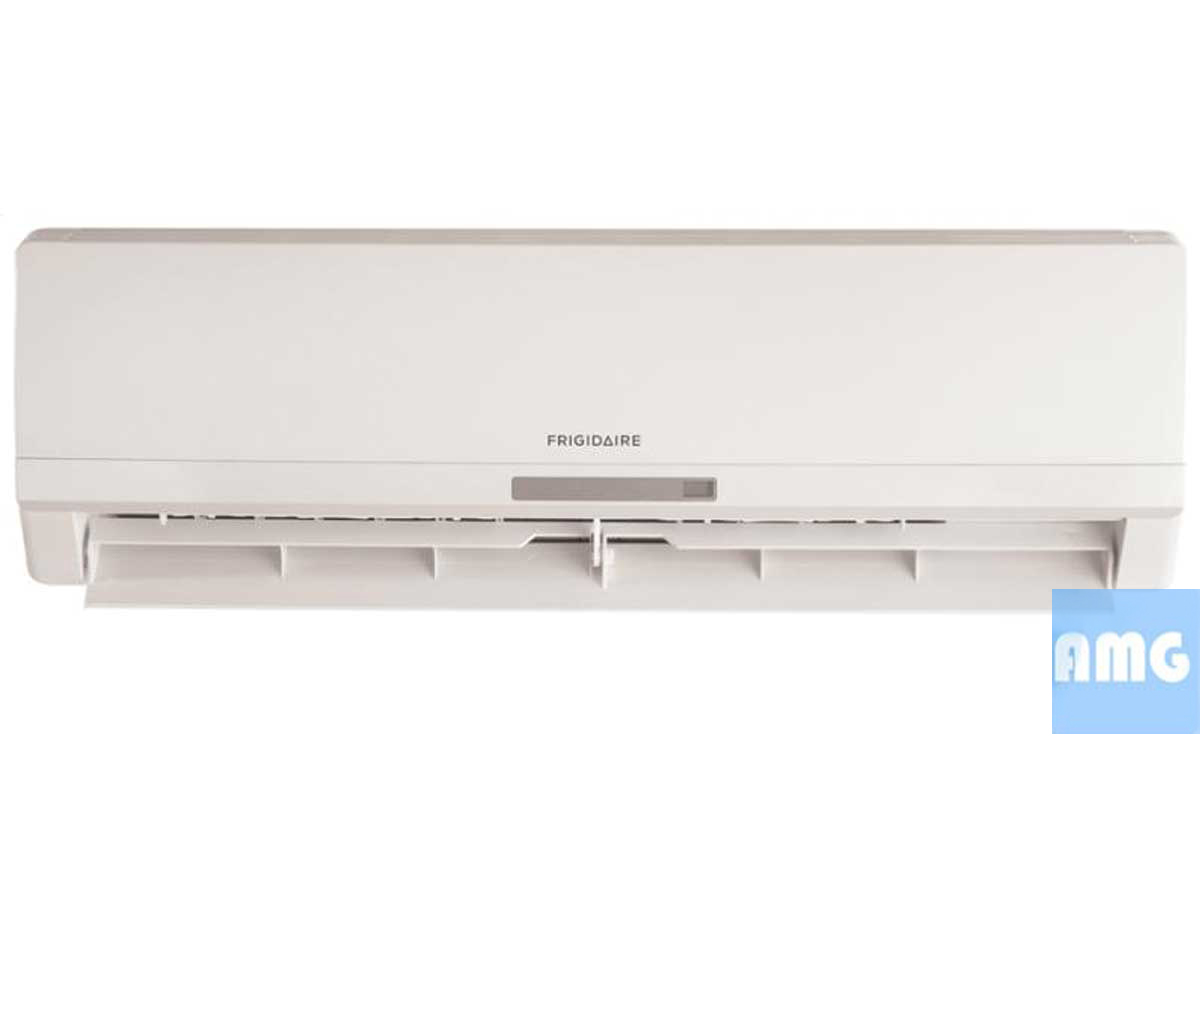 small resolution of frigidaire ductless 9k mini split heat pump frs09pys1 front view